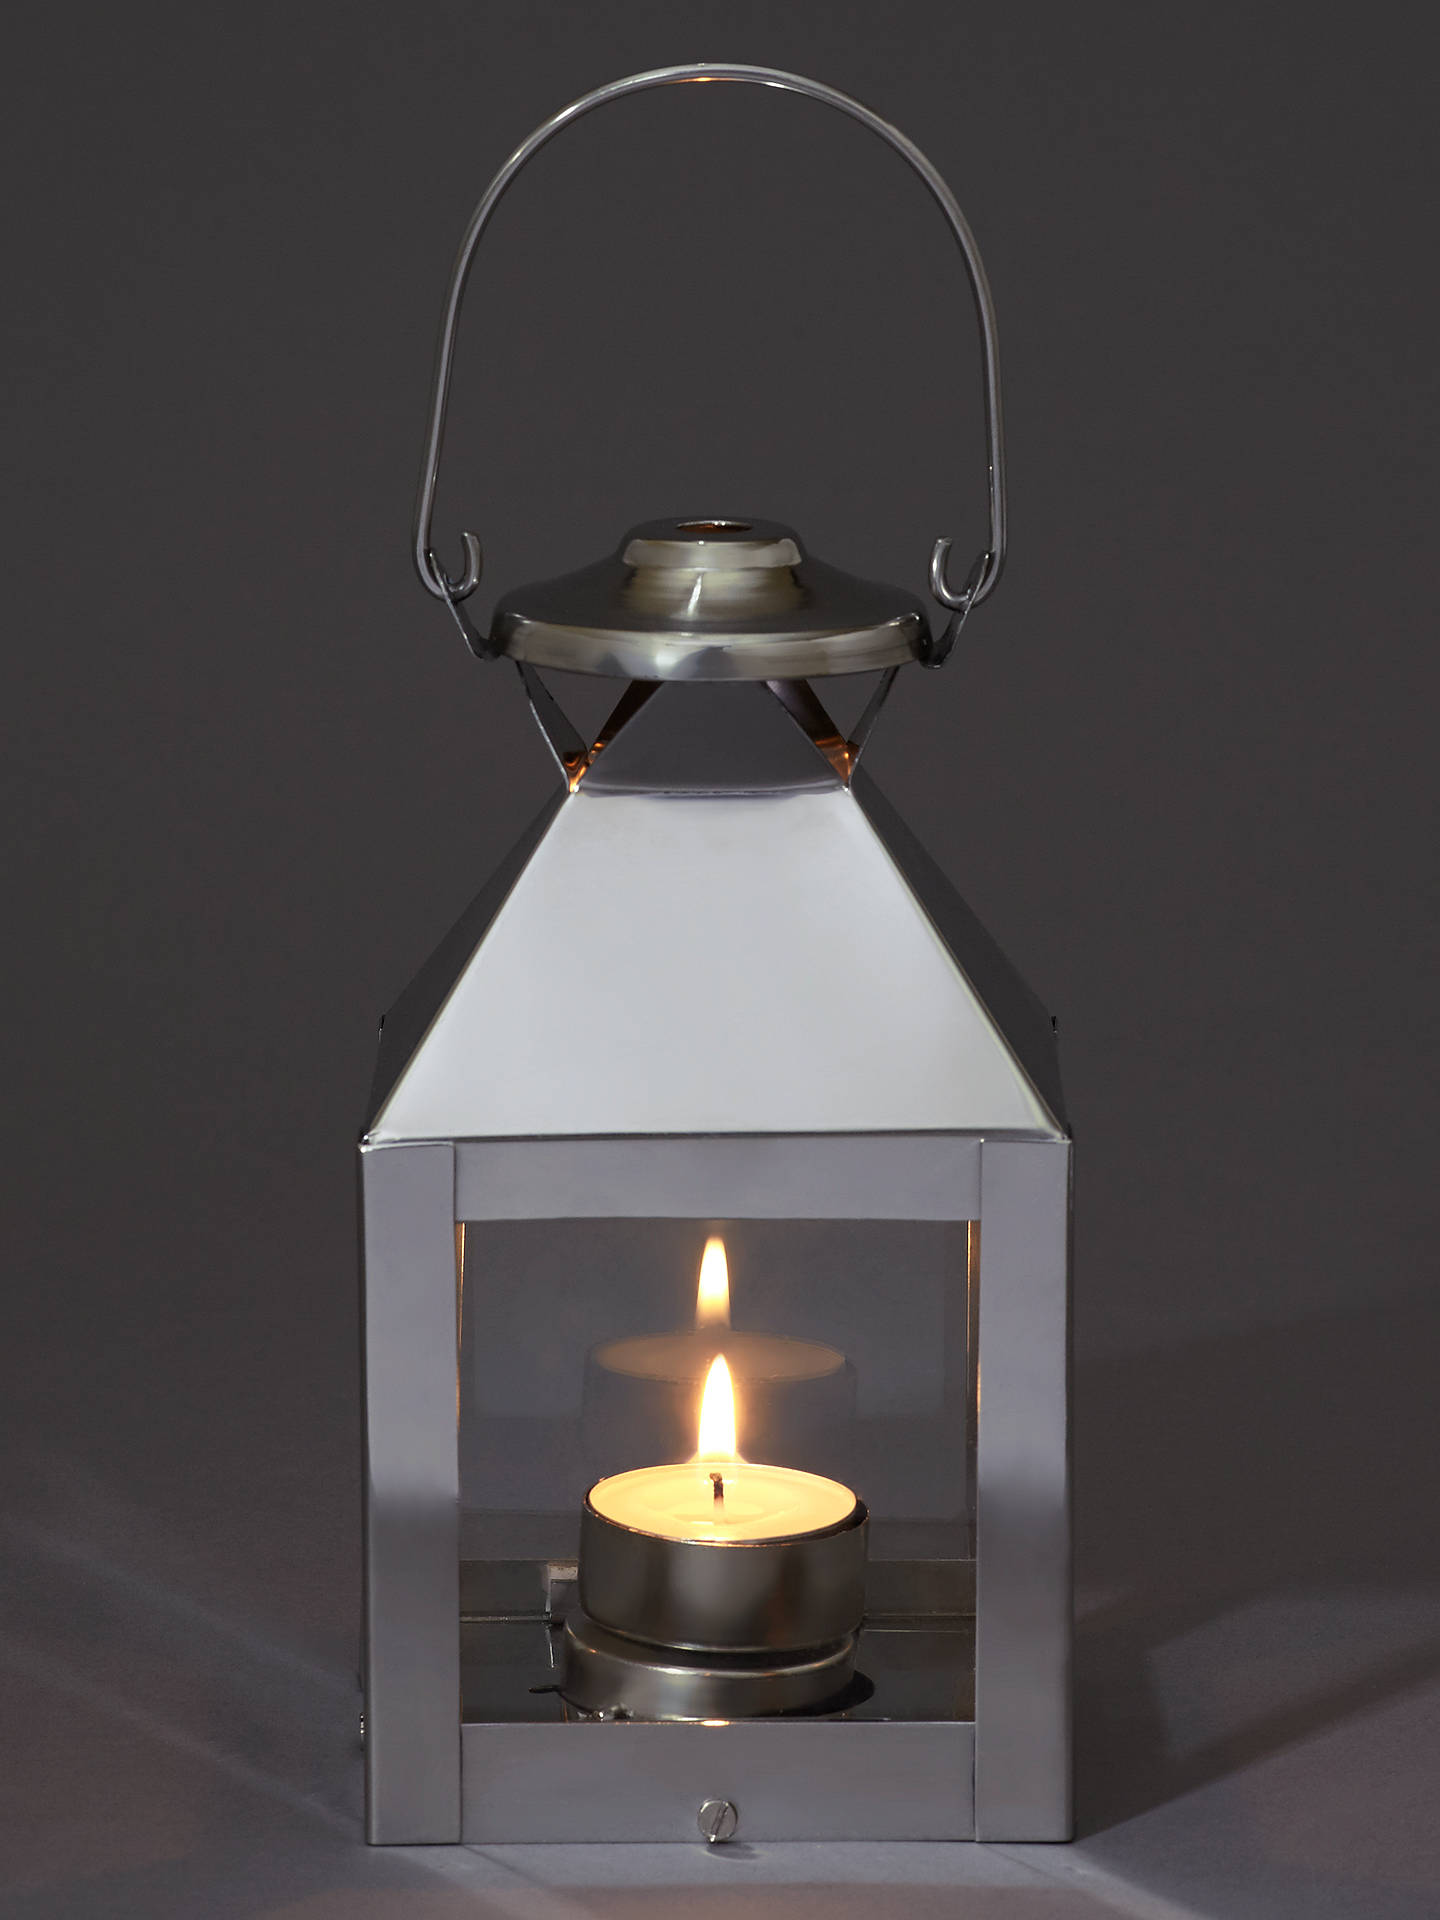 BuyJohn Lewis & Partners Mini Square Aluminium Lantern Online at johnlewis.com